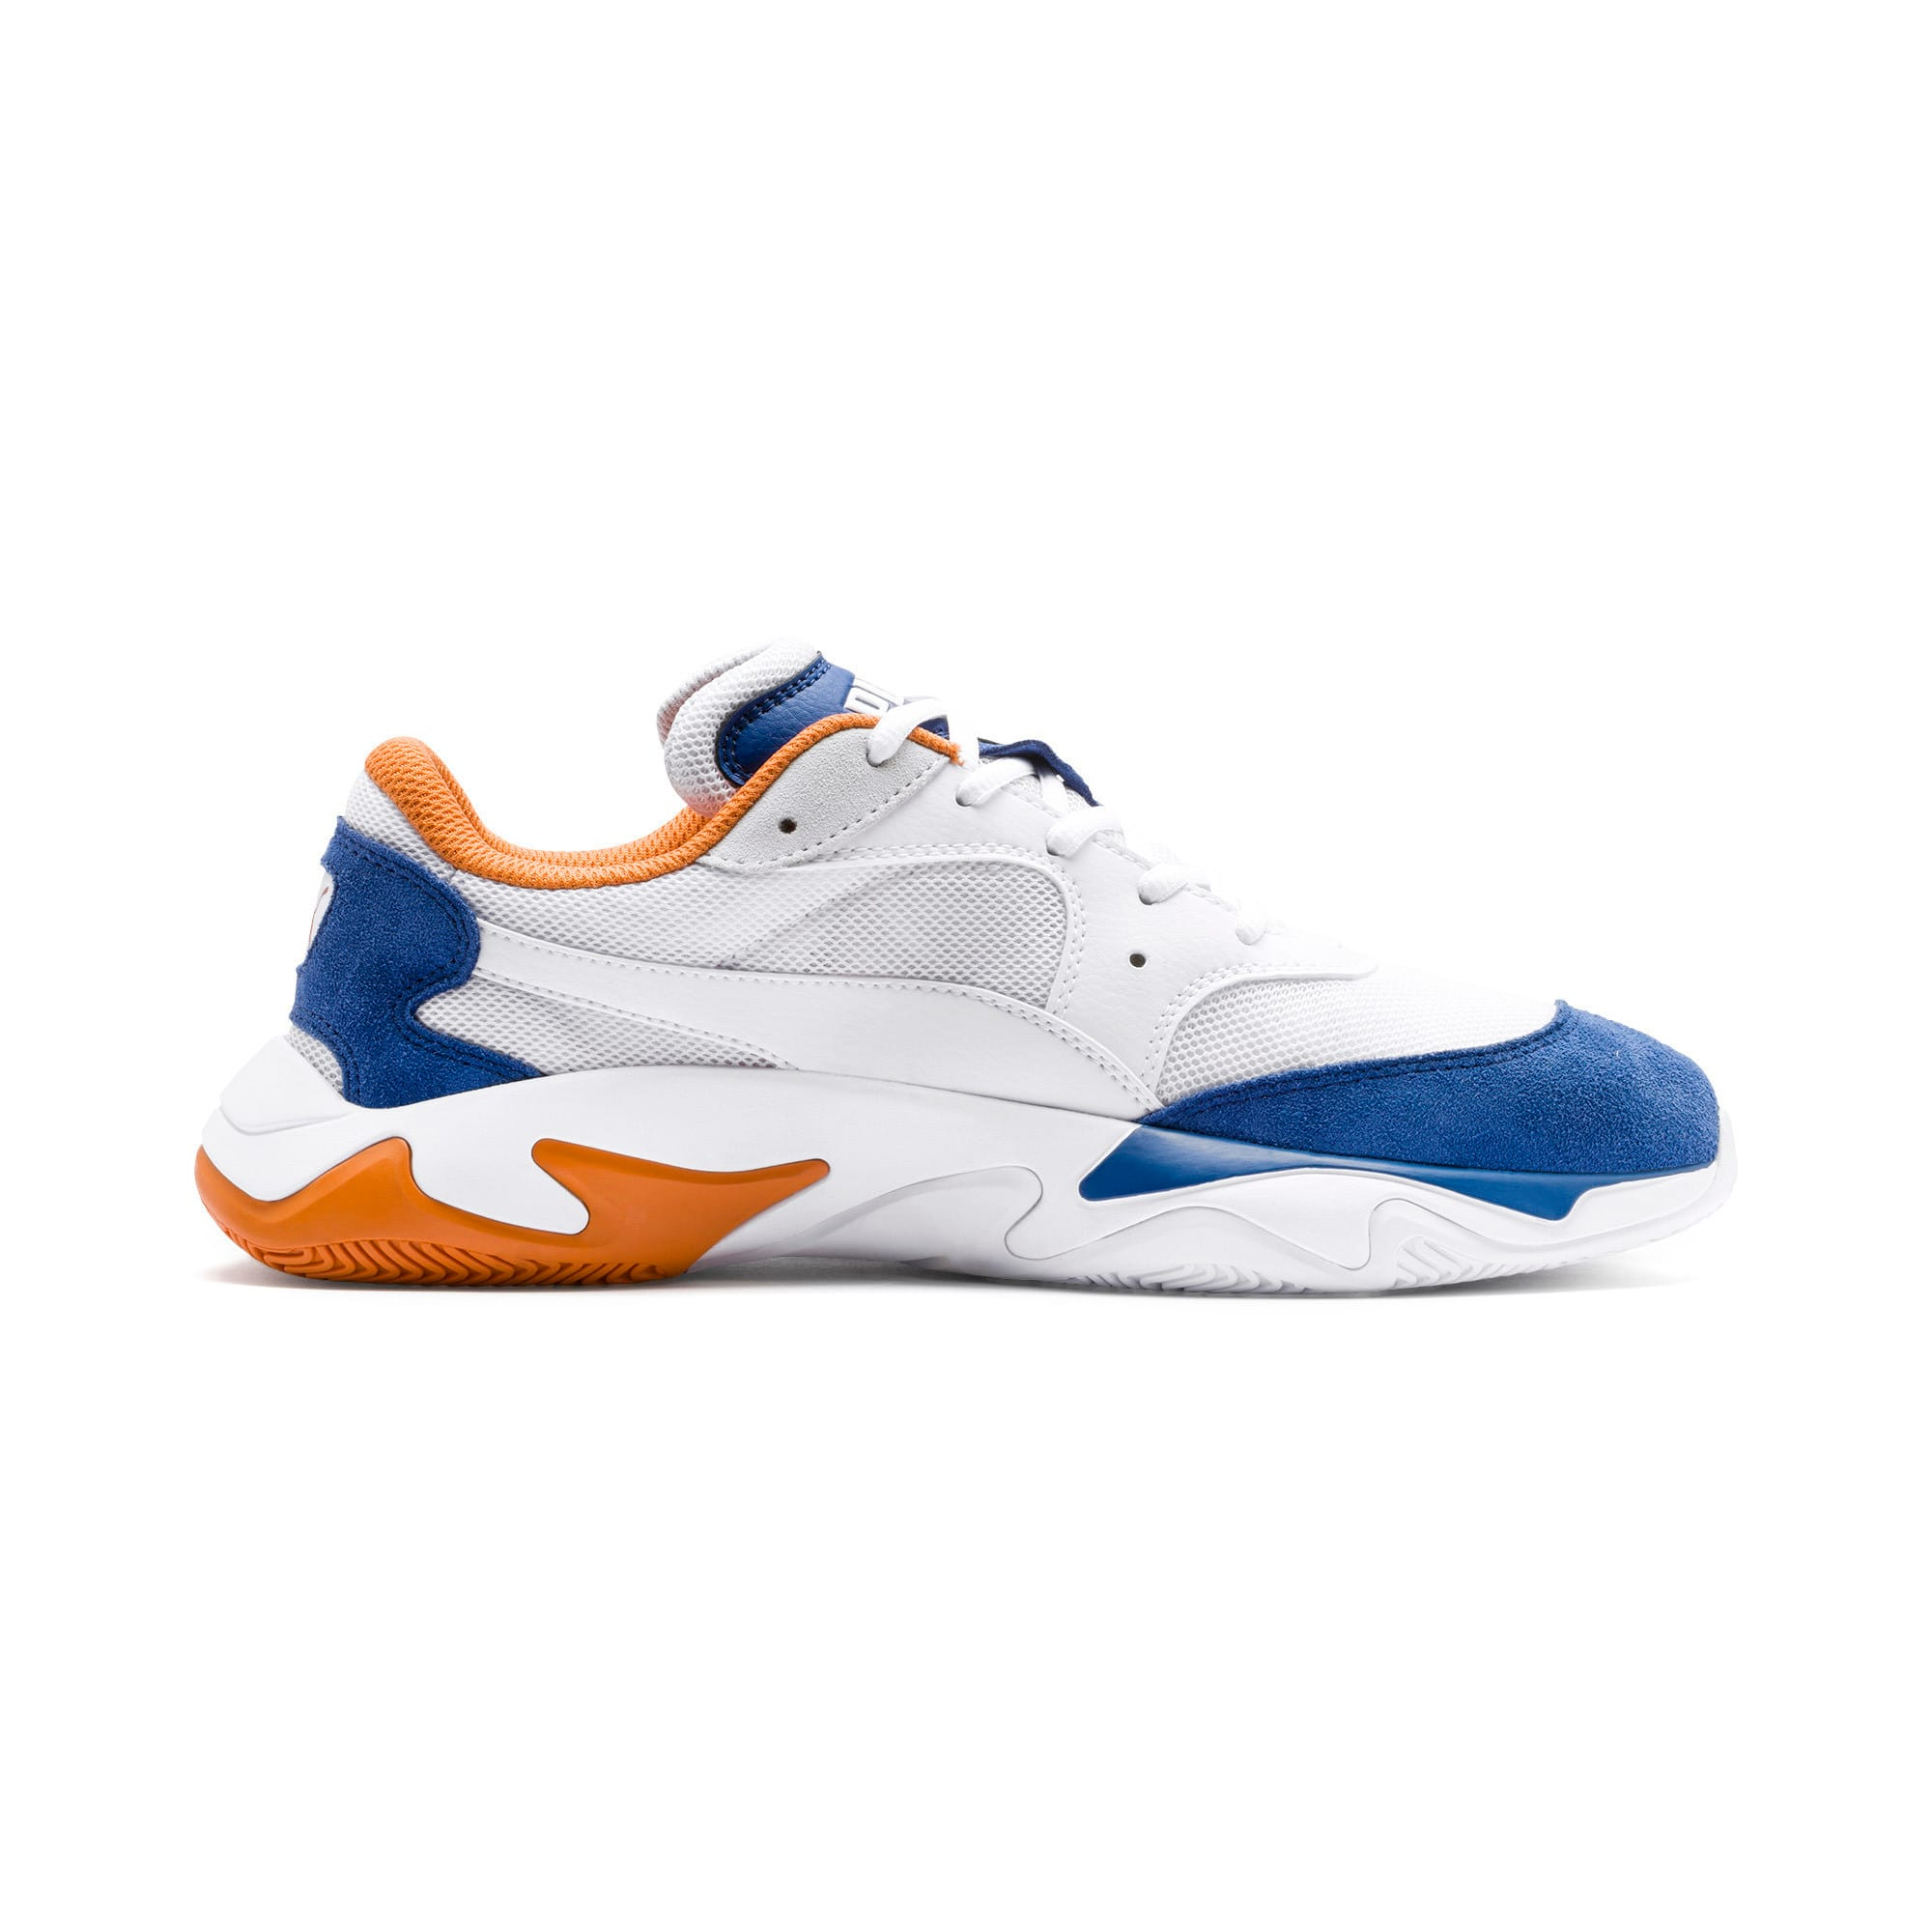 Thumbnail 6 of Storm Adrenaline Sneakers, Galaxy Blue-Puma White, medium